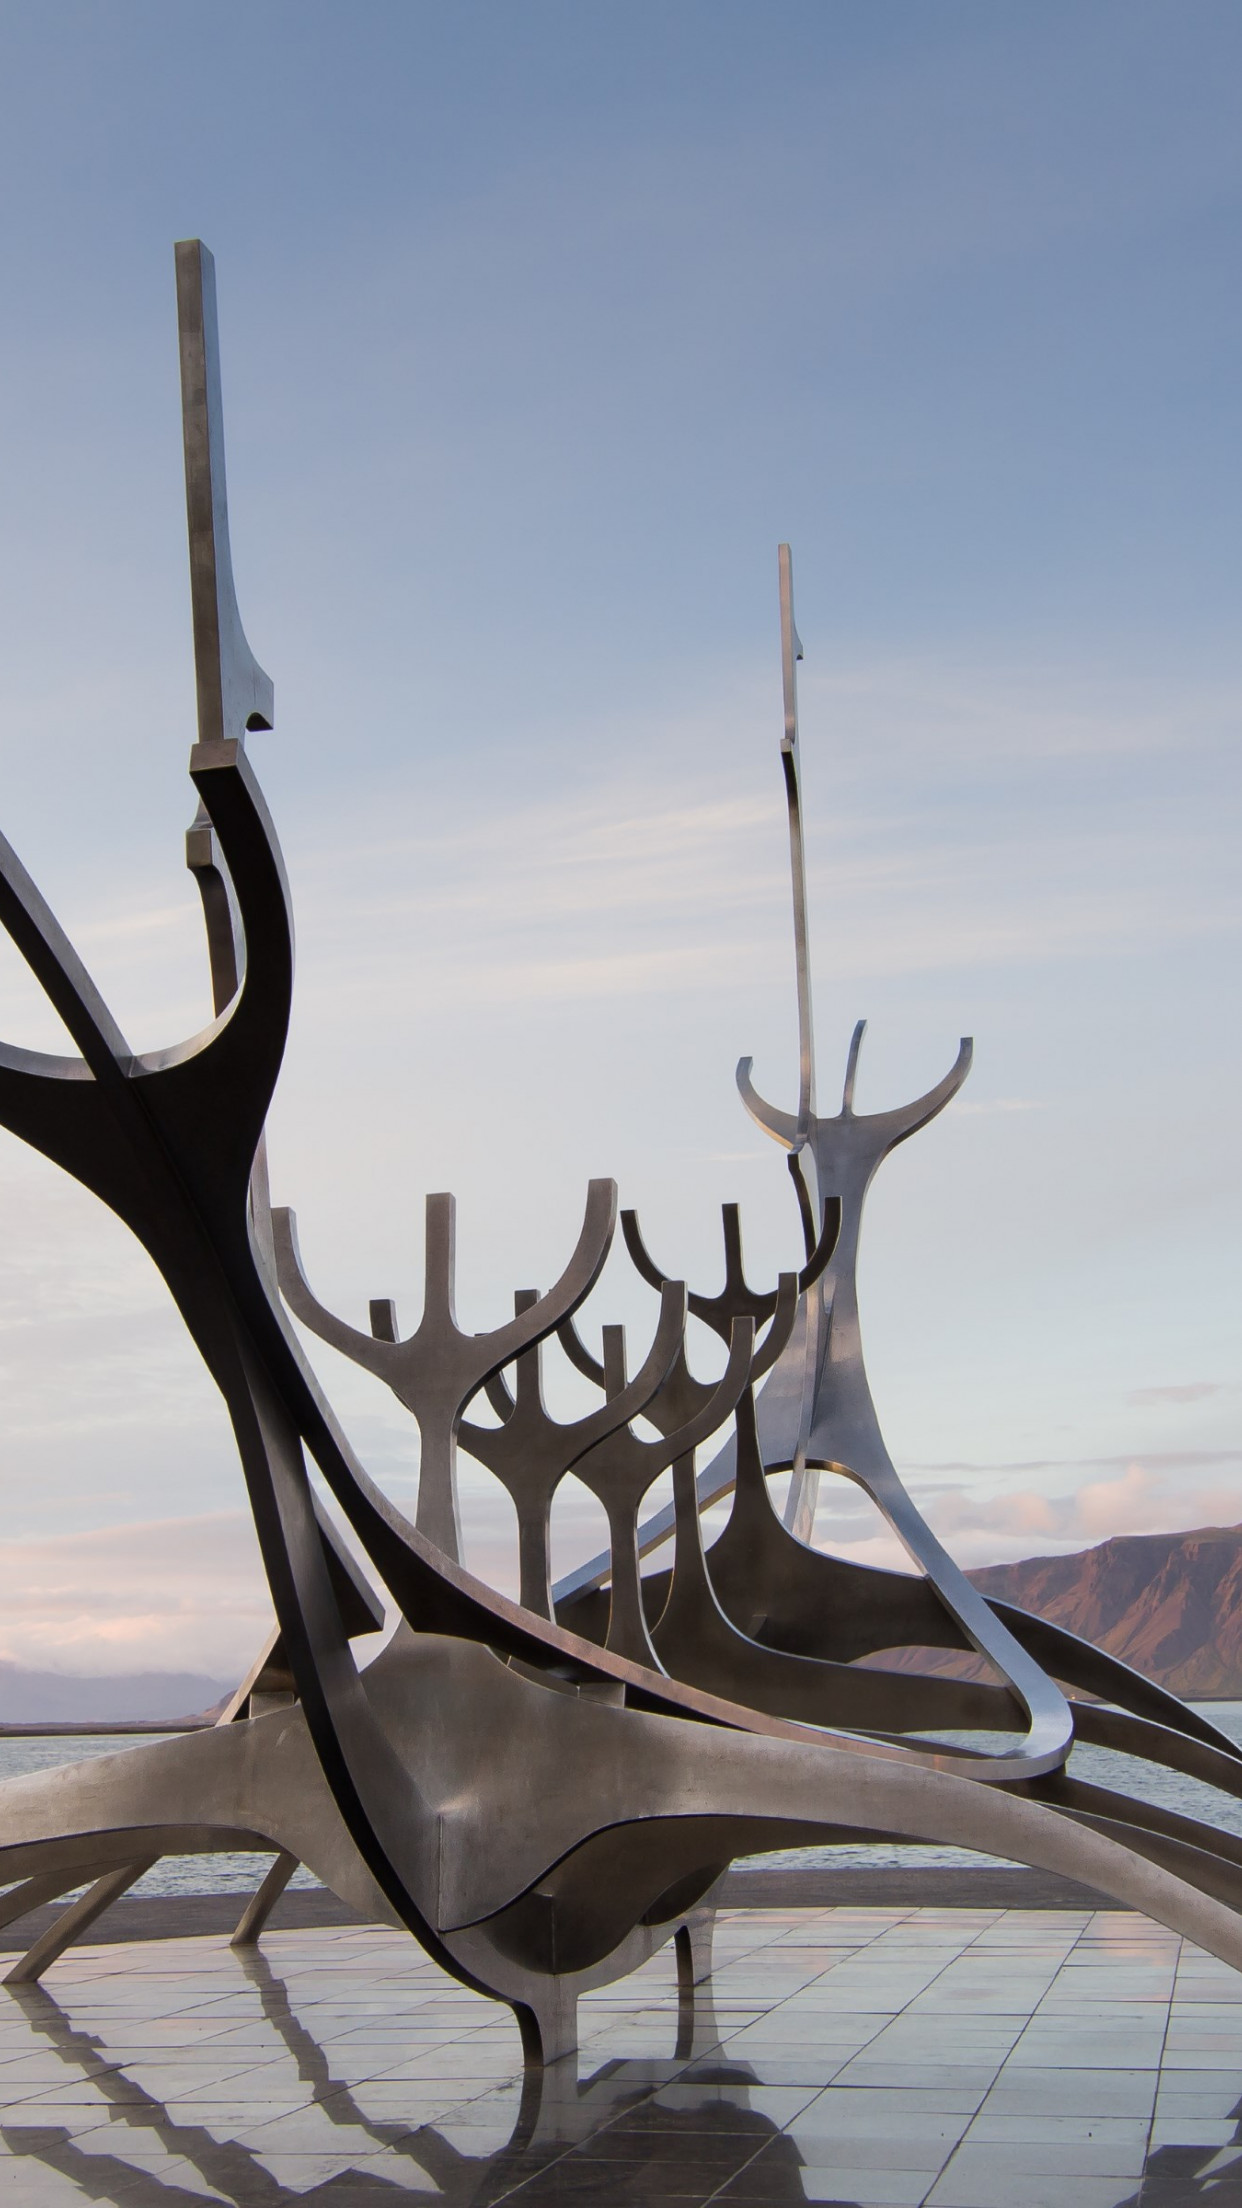 The Sun Voyager from Reykjavik, Iceland | 1242x2208 wallpaper